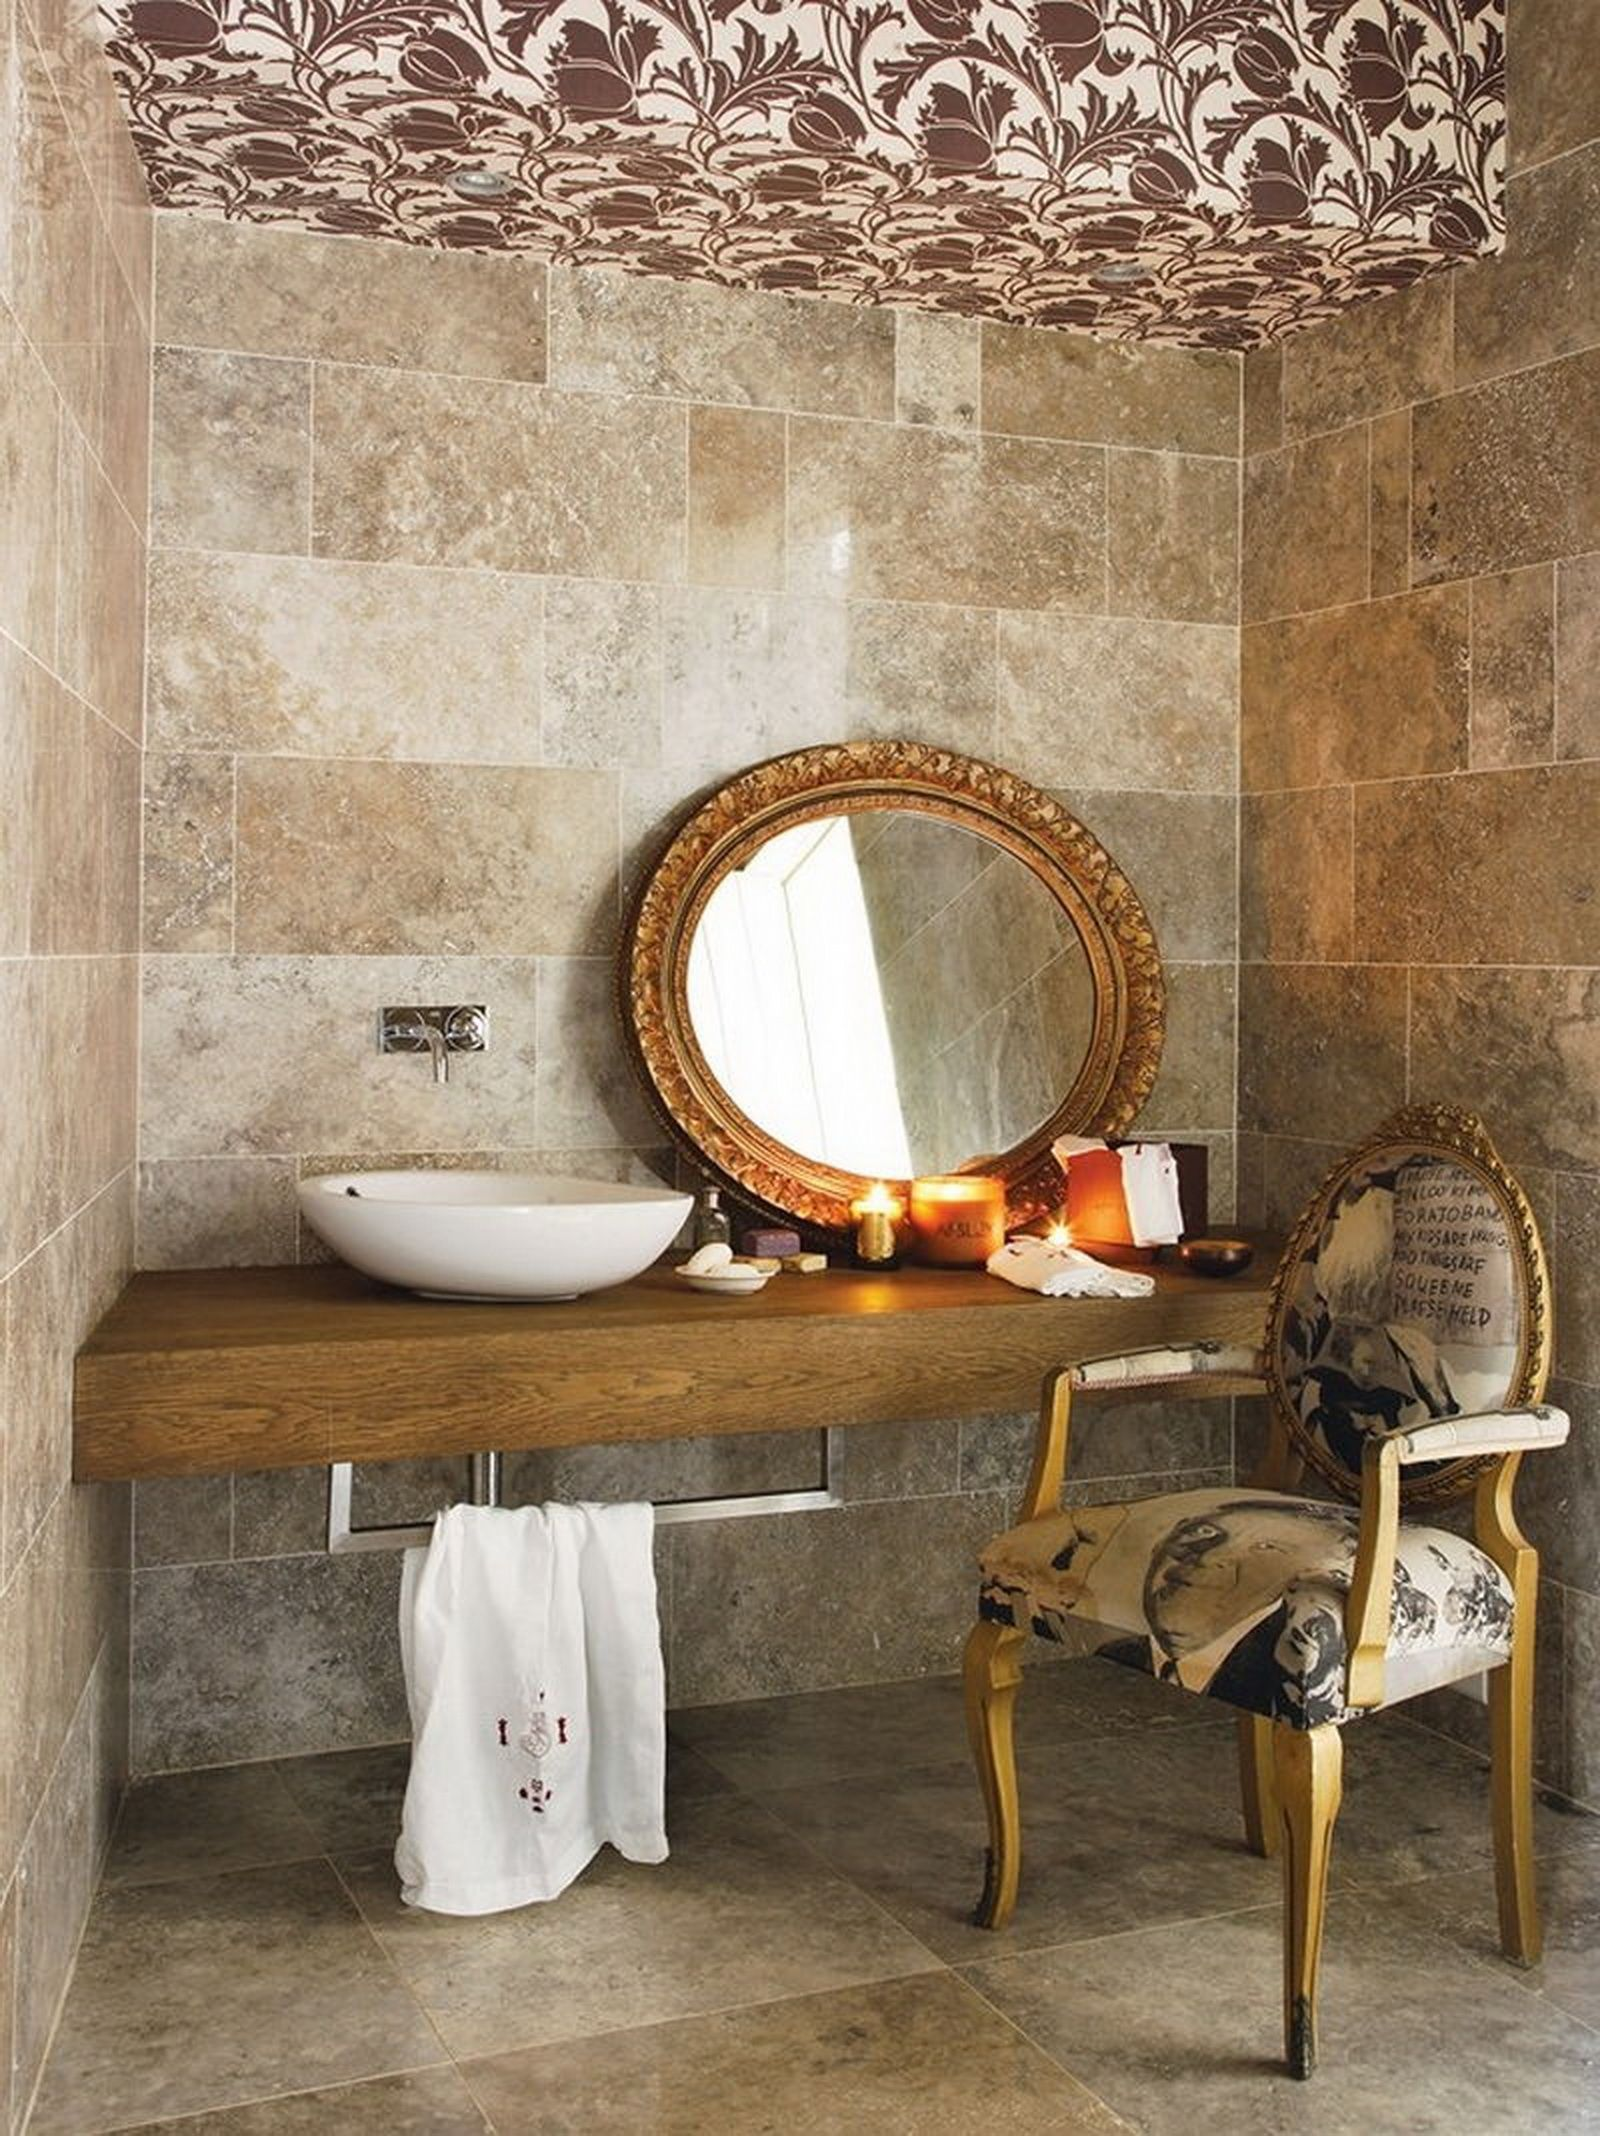 home in johannesburgsouth africa bathroom chairvanity bathroomdesign